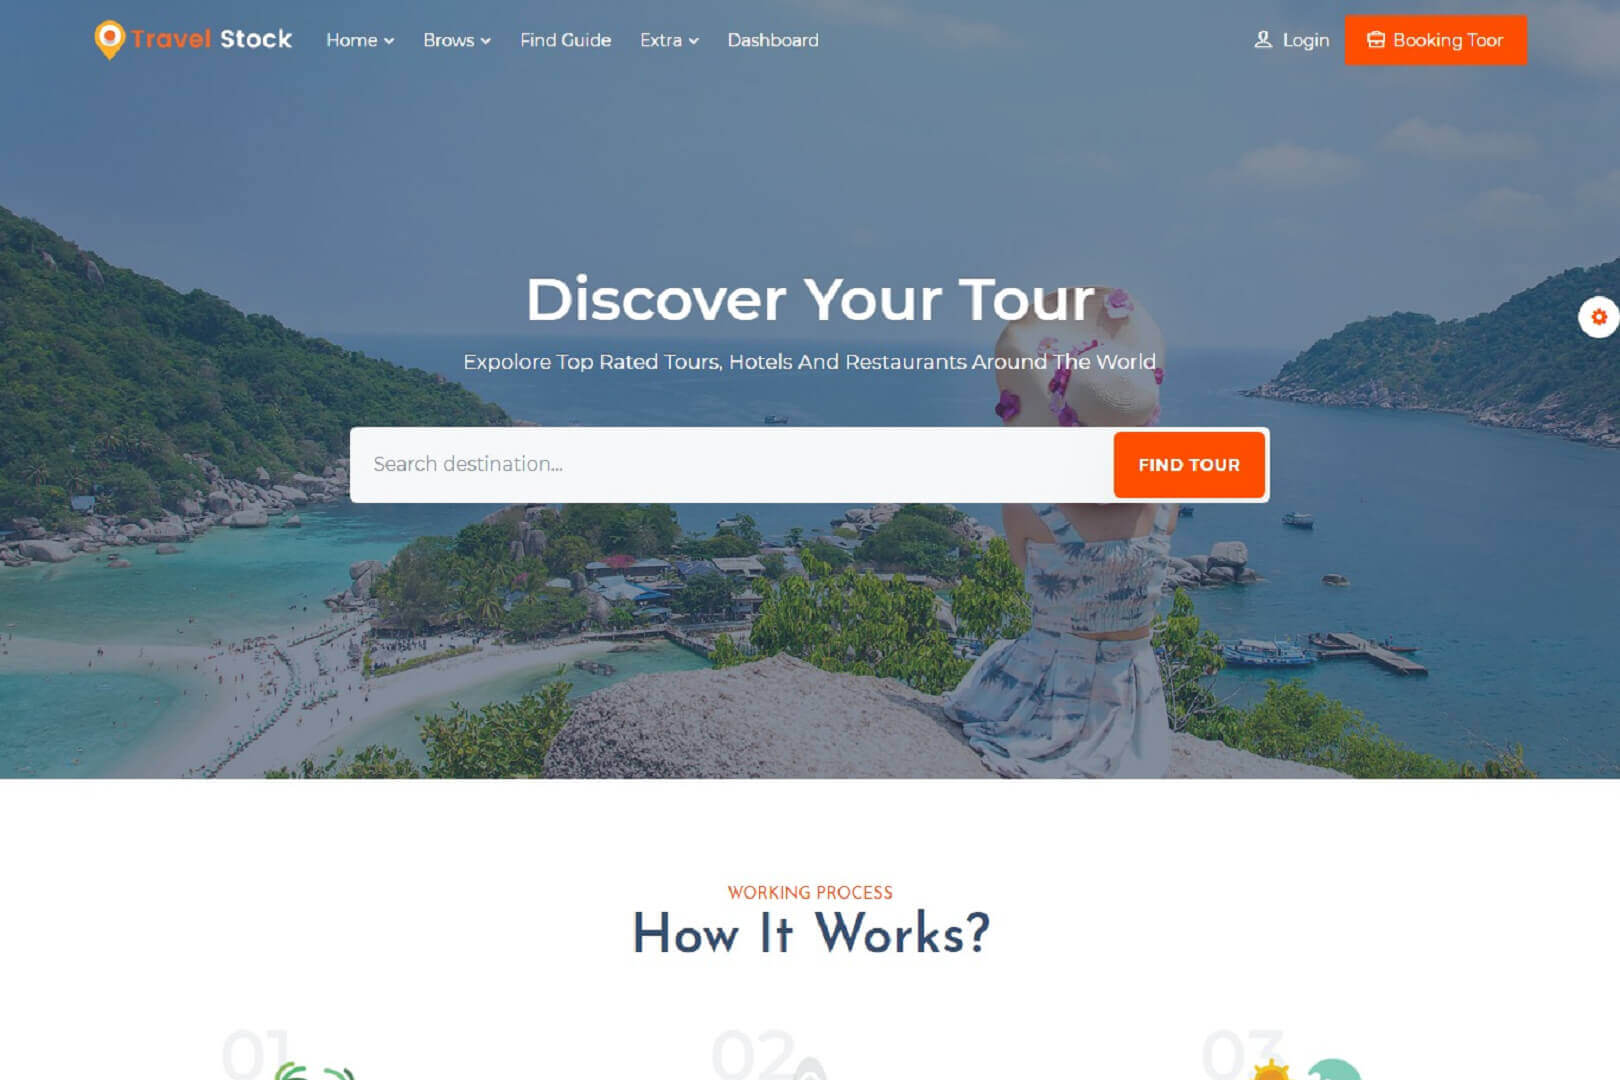 Travel Stock Creative Tour & Travel Agency Template